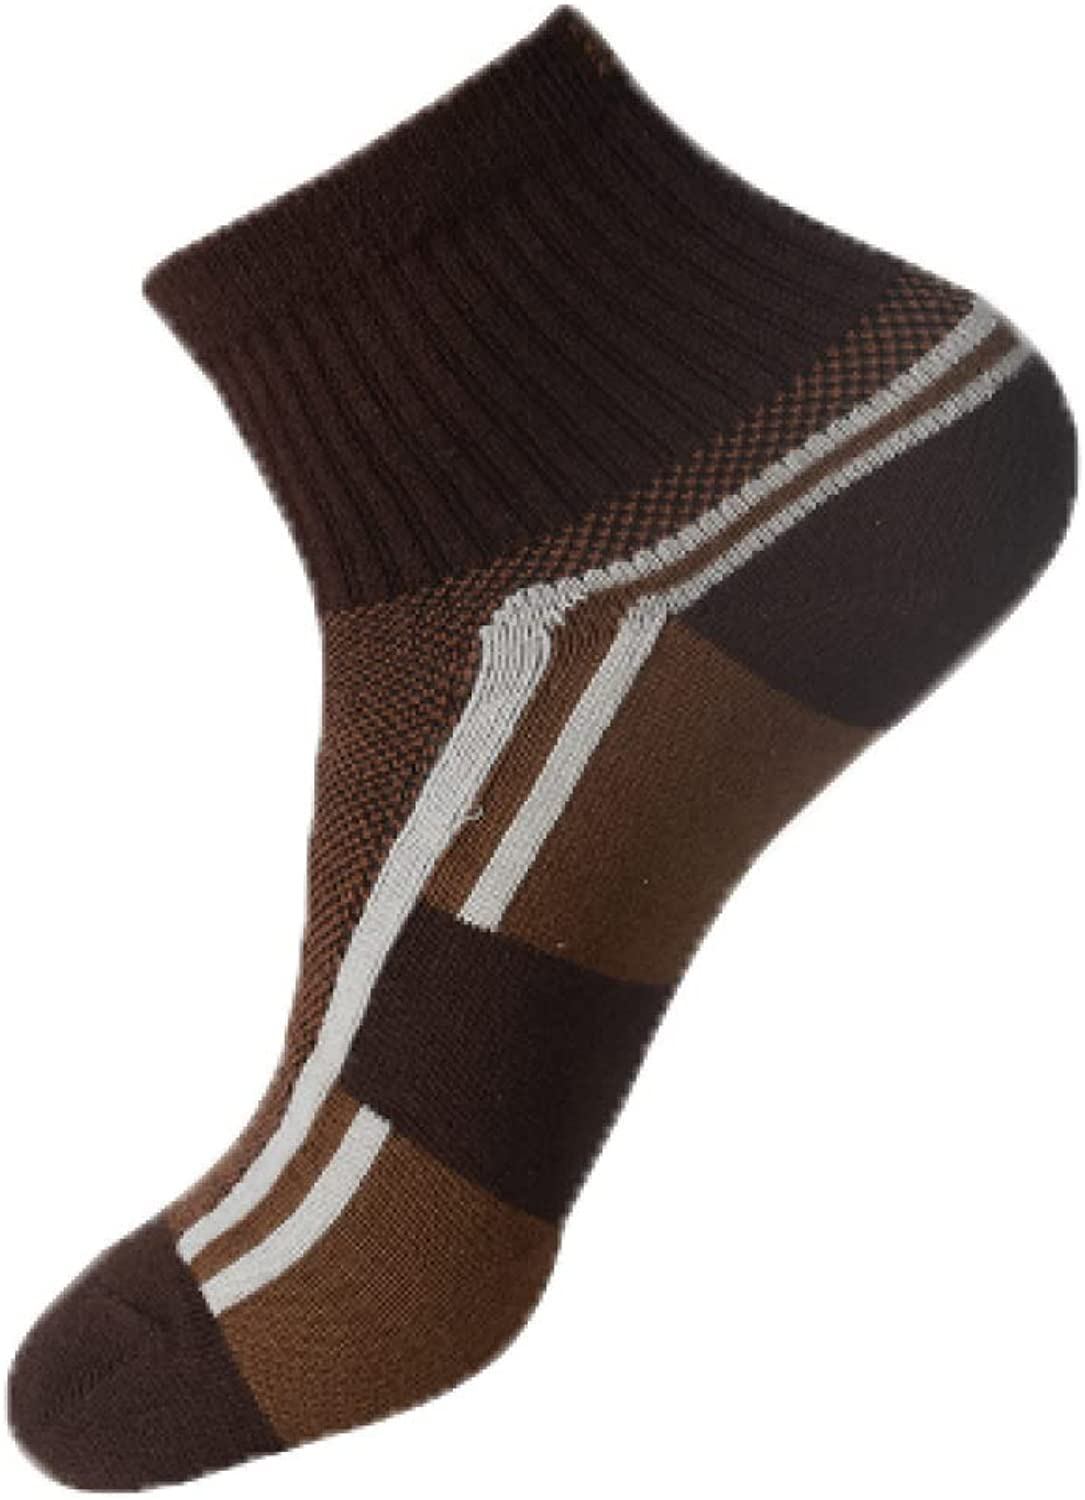 Compression Cheap super special price Athletic Crew Cheap sale Socks Moisture Wicking Sock Ult Sports